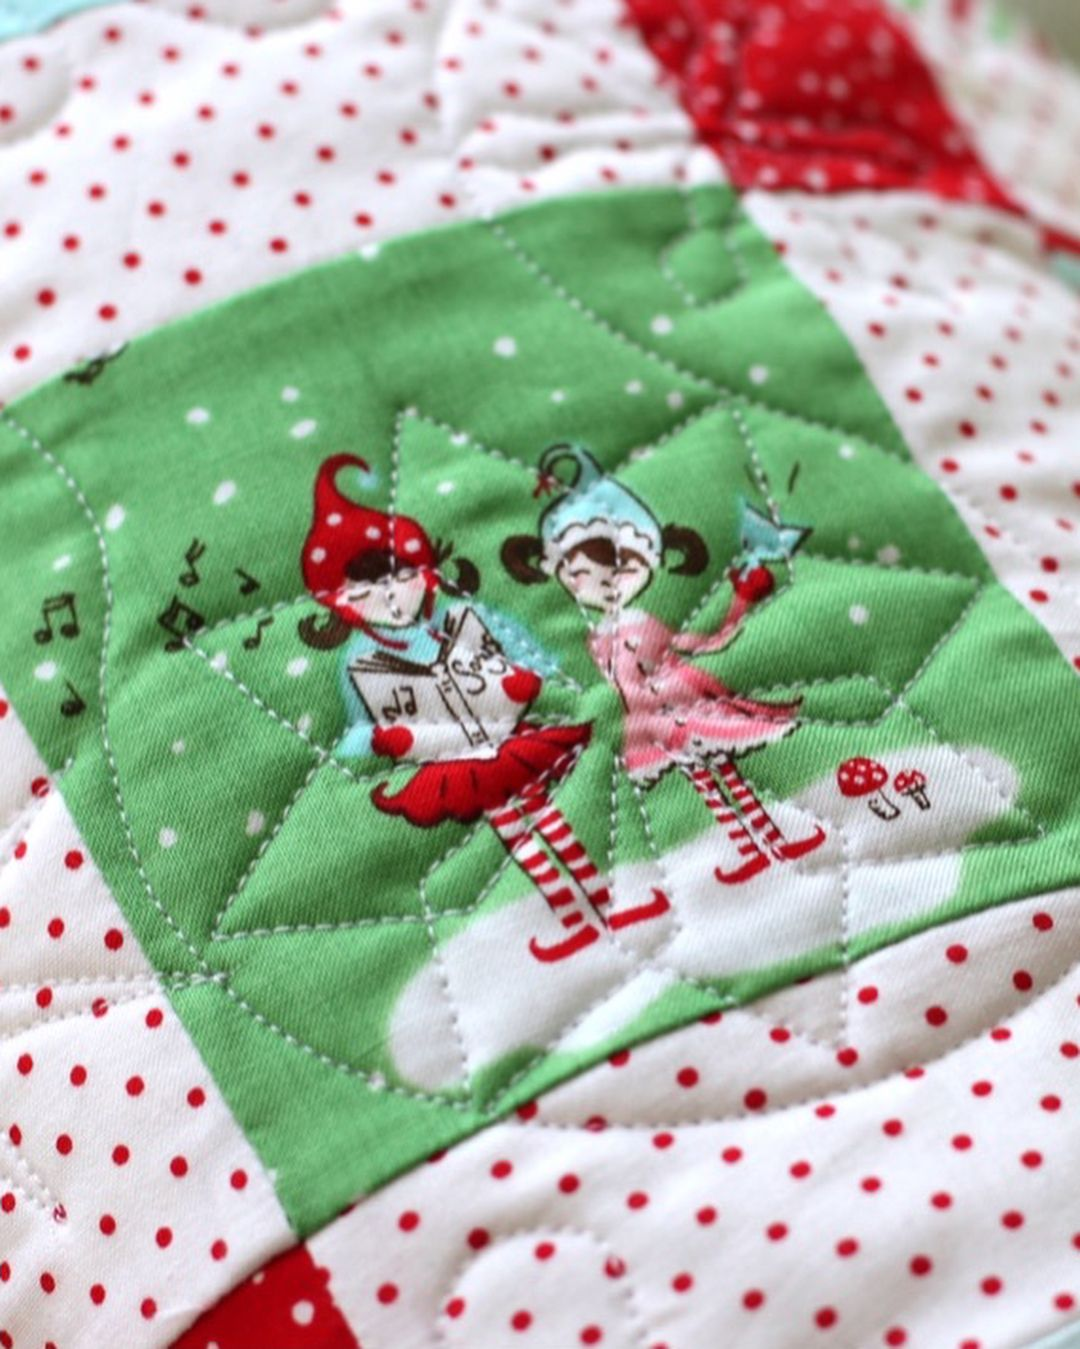 Ide Couture Noel Fabulous Awesome Finest Inspiration Diy